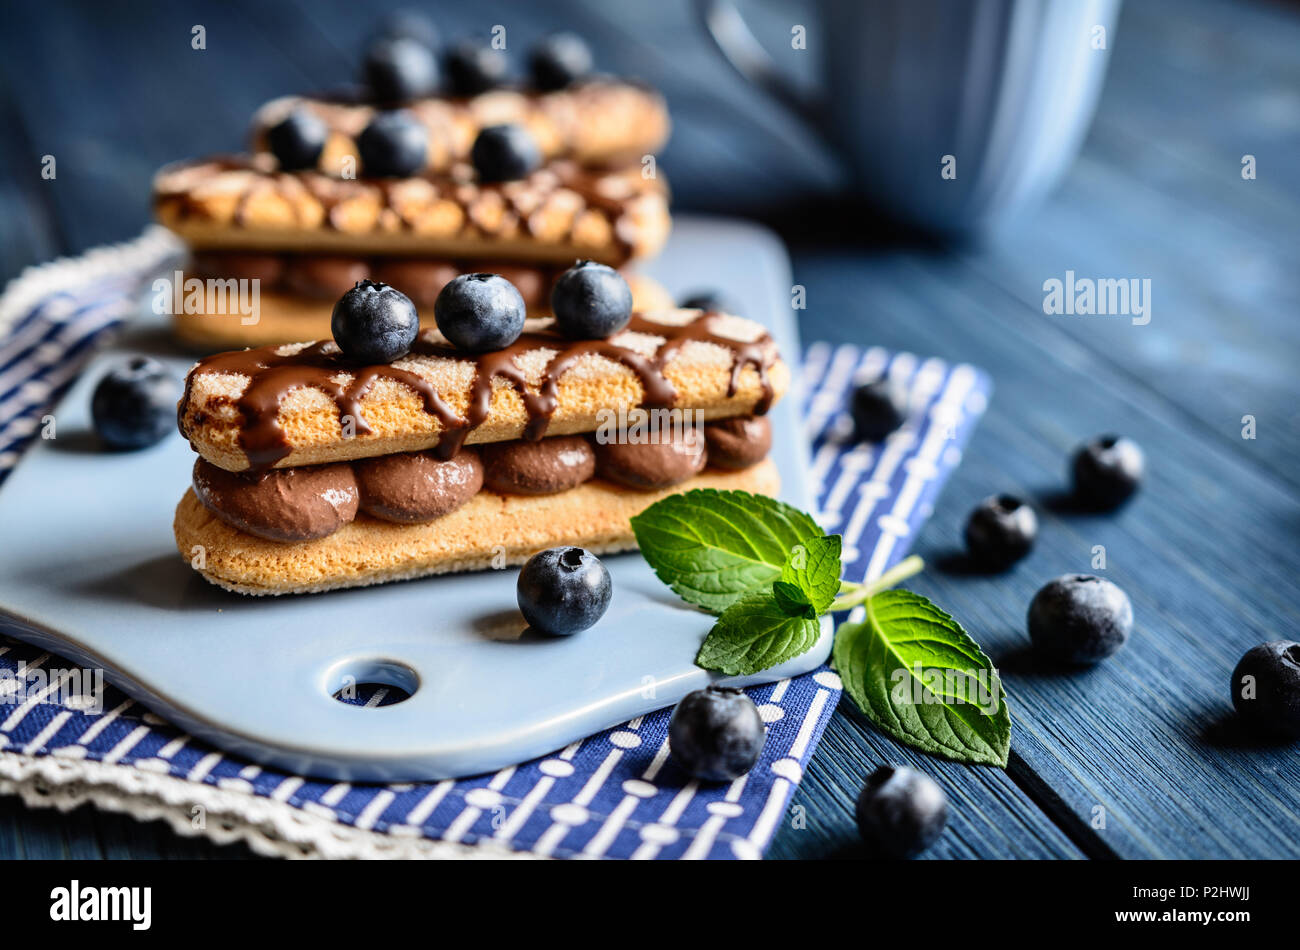 Ladyfingers filled with cocoa mascarpone cream, topped with chocolate and blueberry - Stock Image